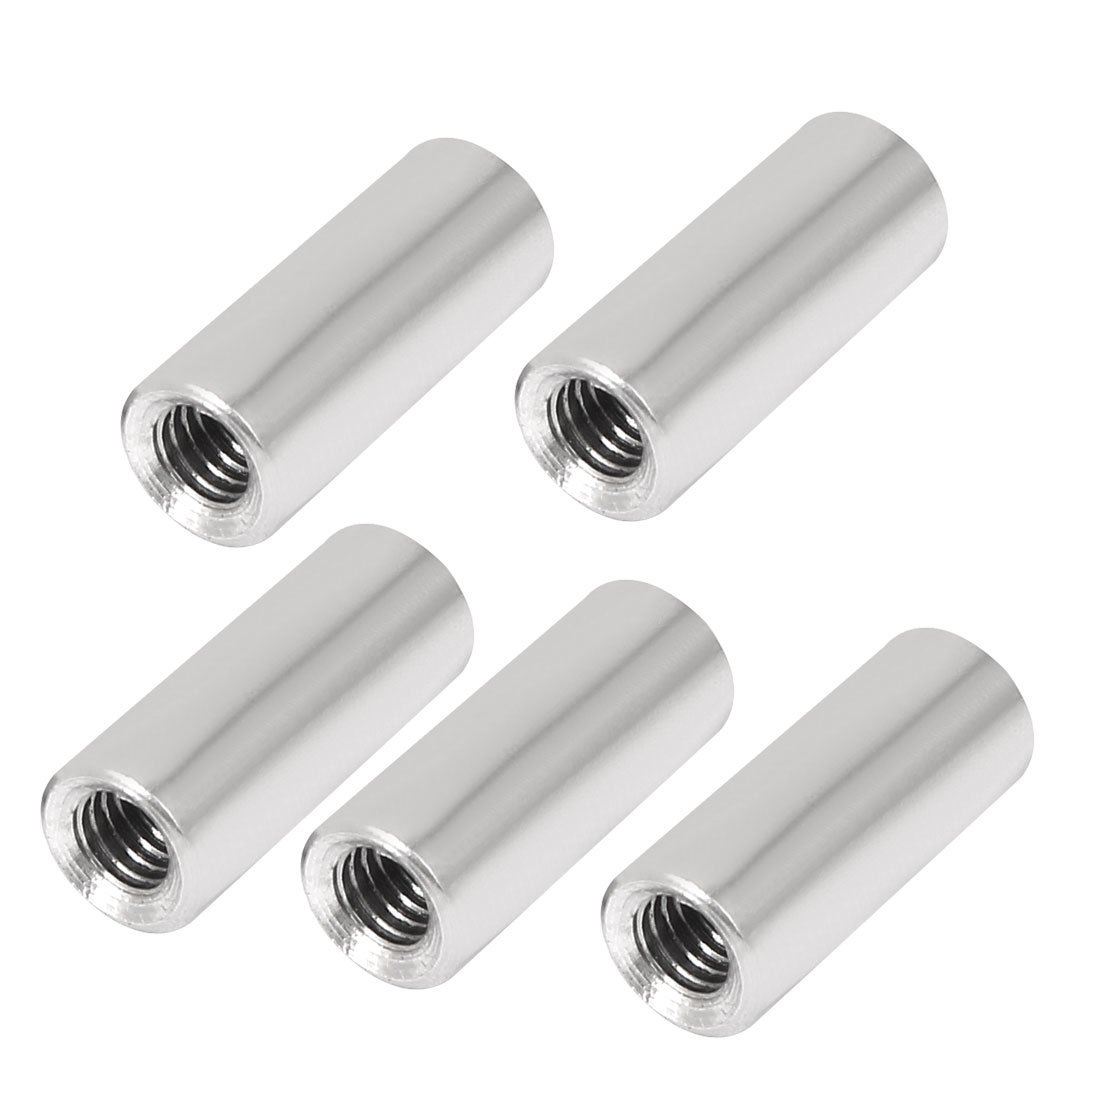 5Pcs Nuts M6/0.24 Round Coupling Connector Nuts Round Rod Bar Stud Threaded Insert Rose Joint Adapter Threaded Connectors Nuts